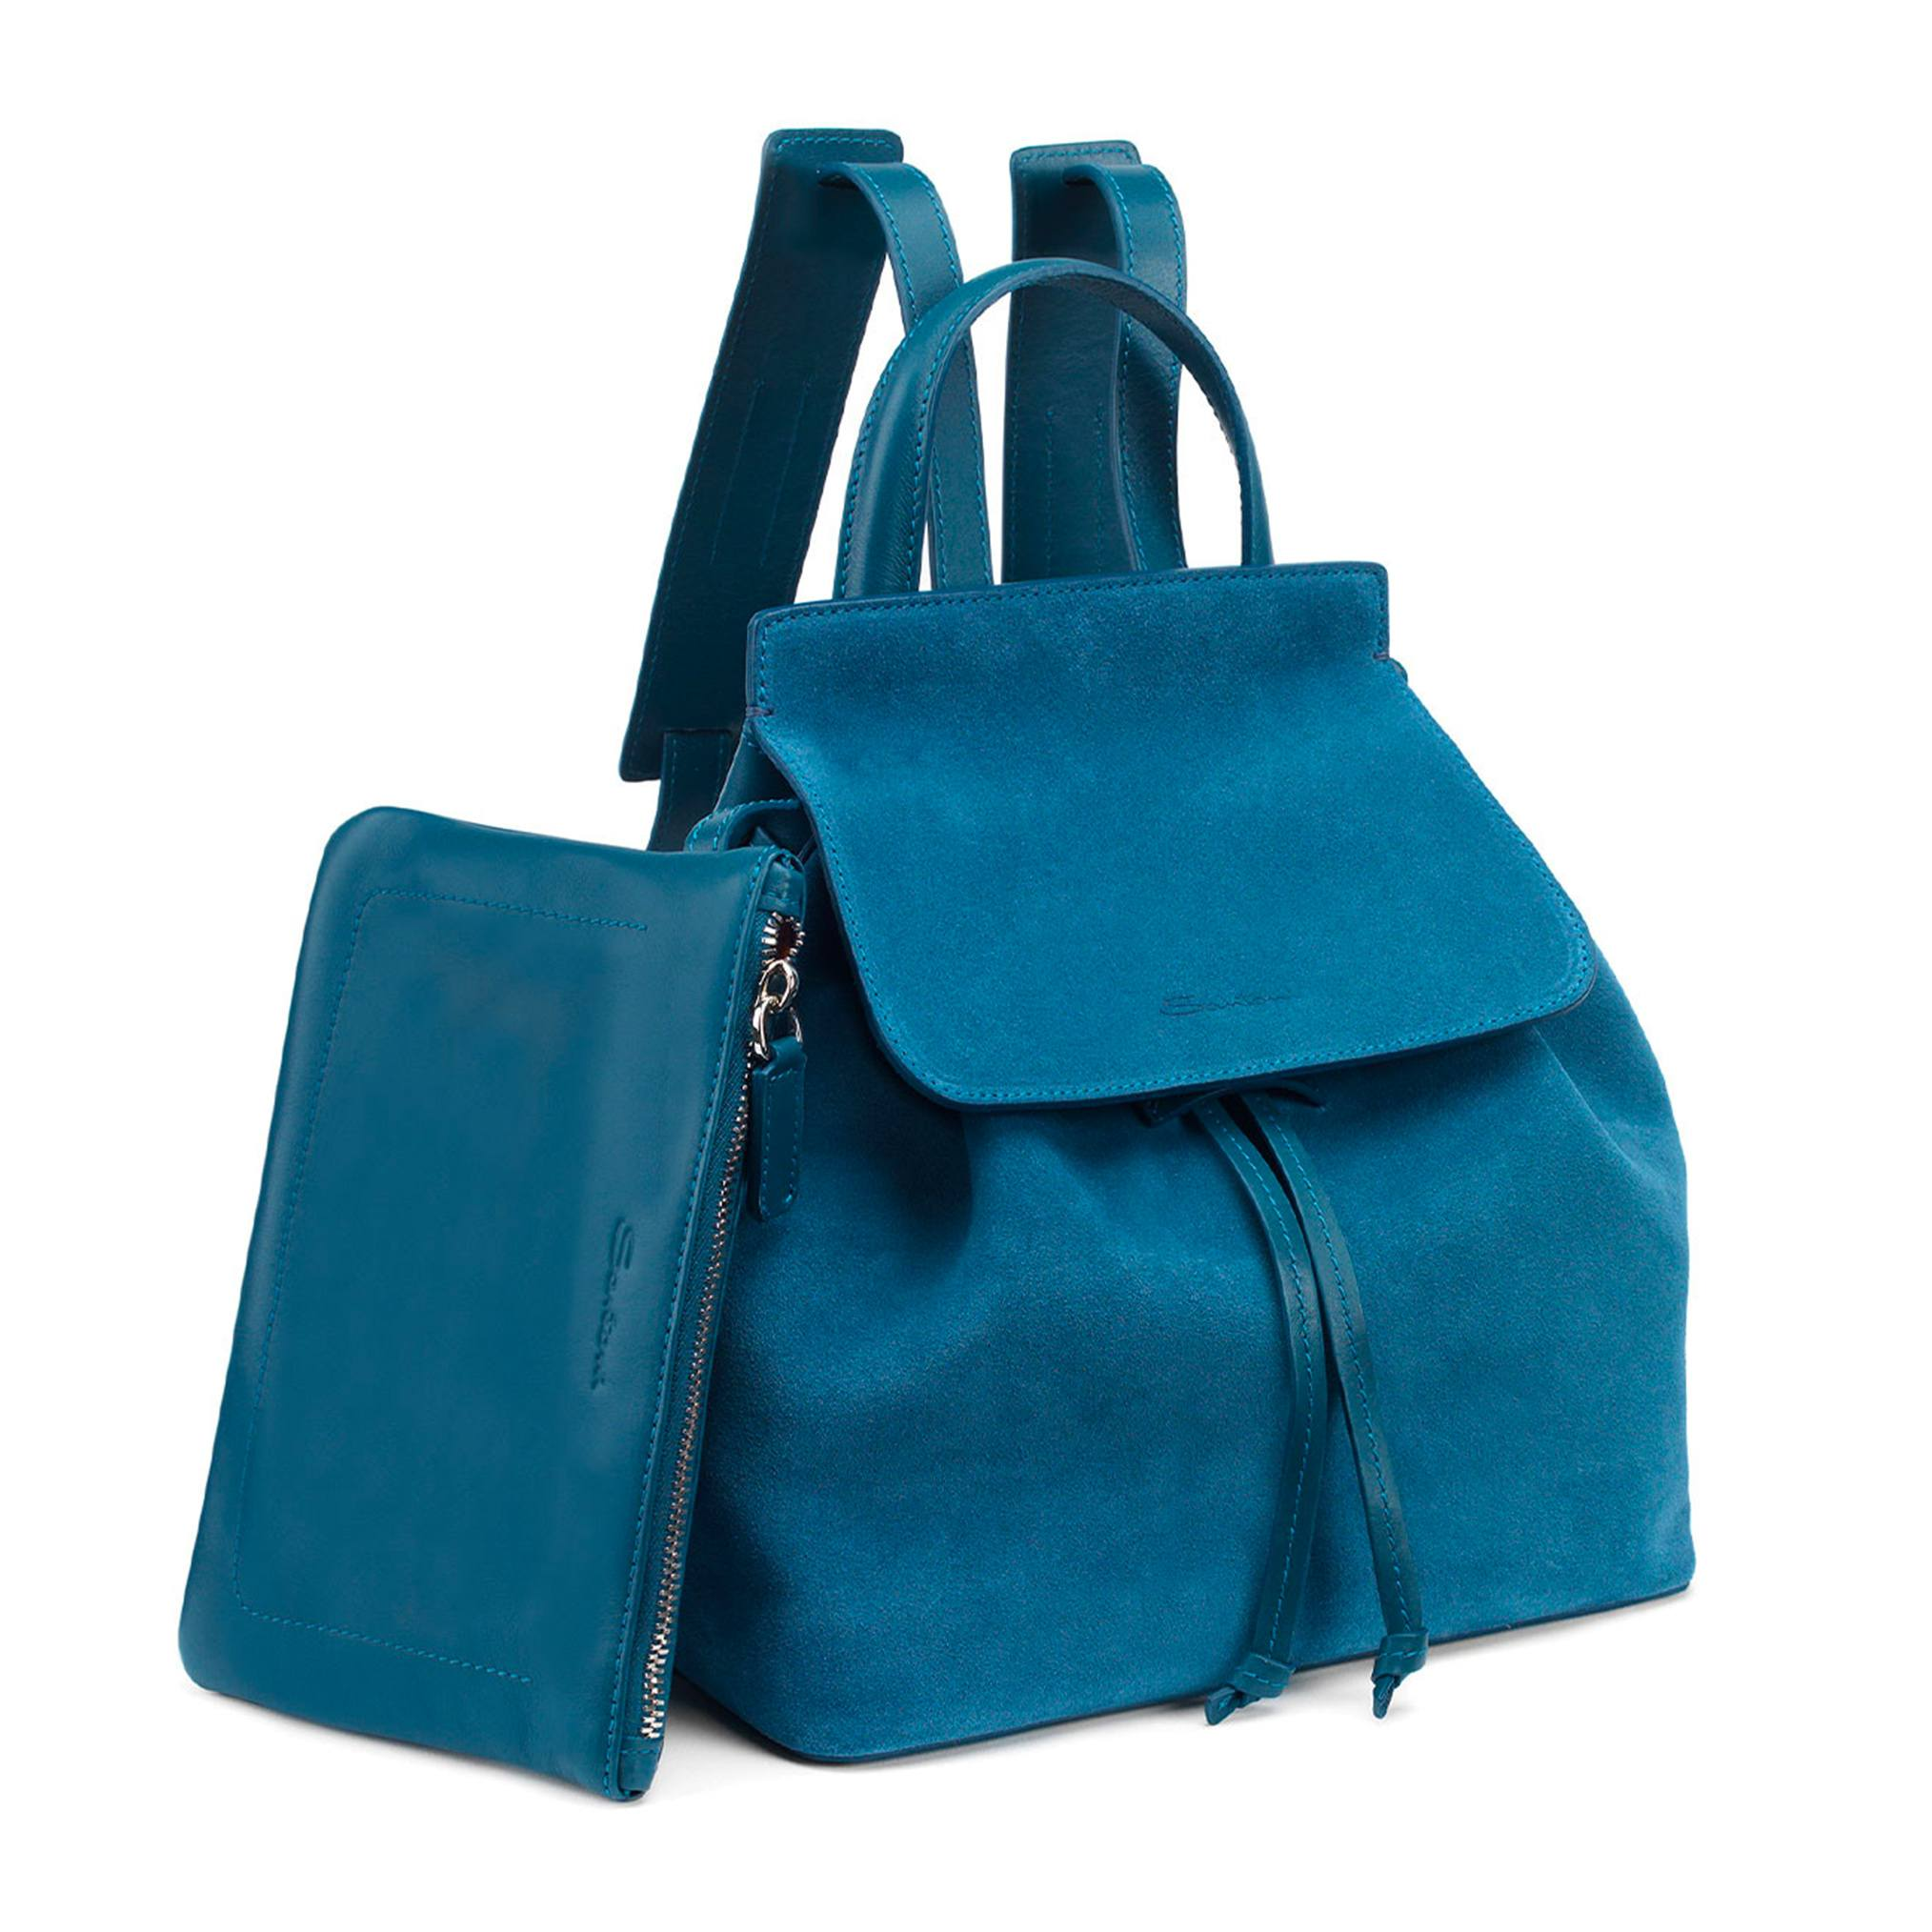 Santoni Backpack in blue suede and leather